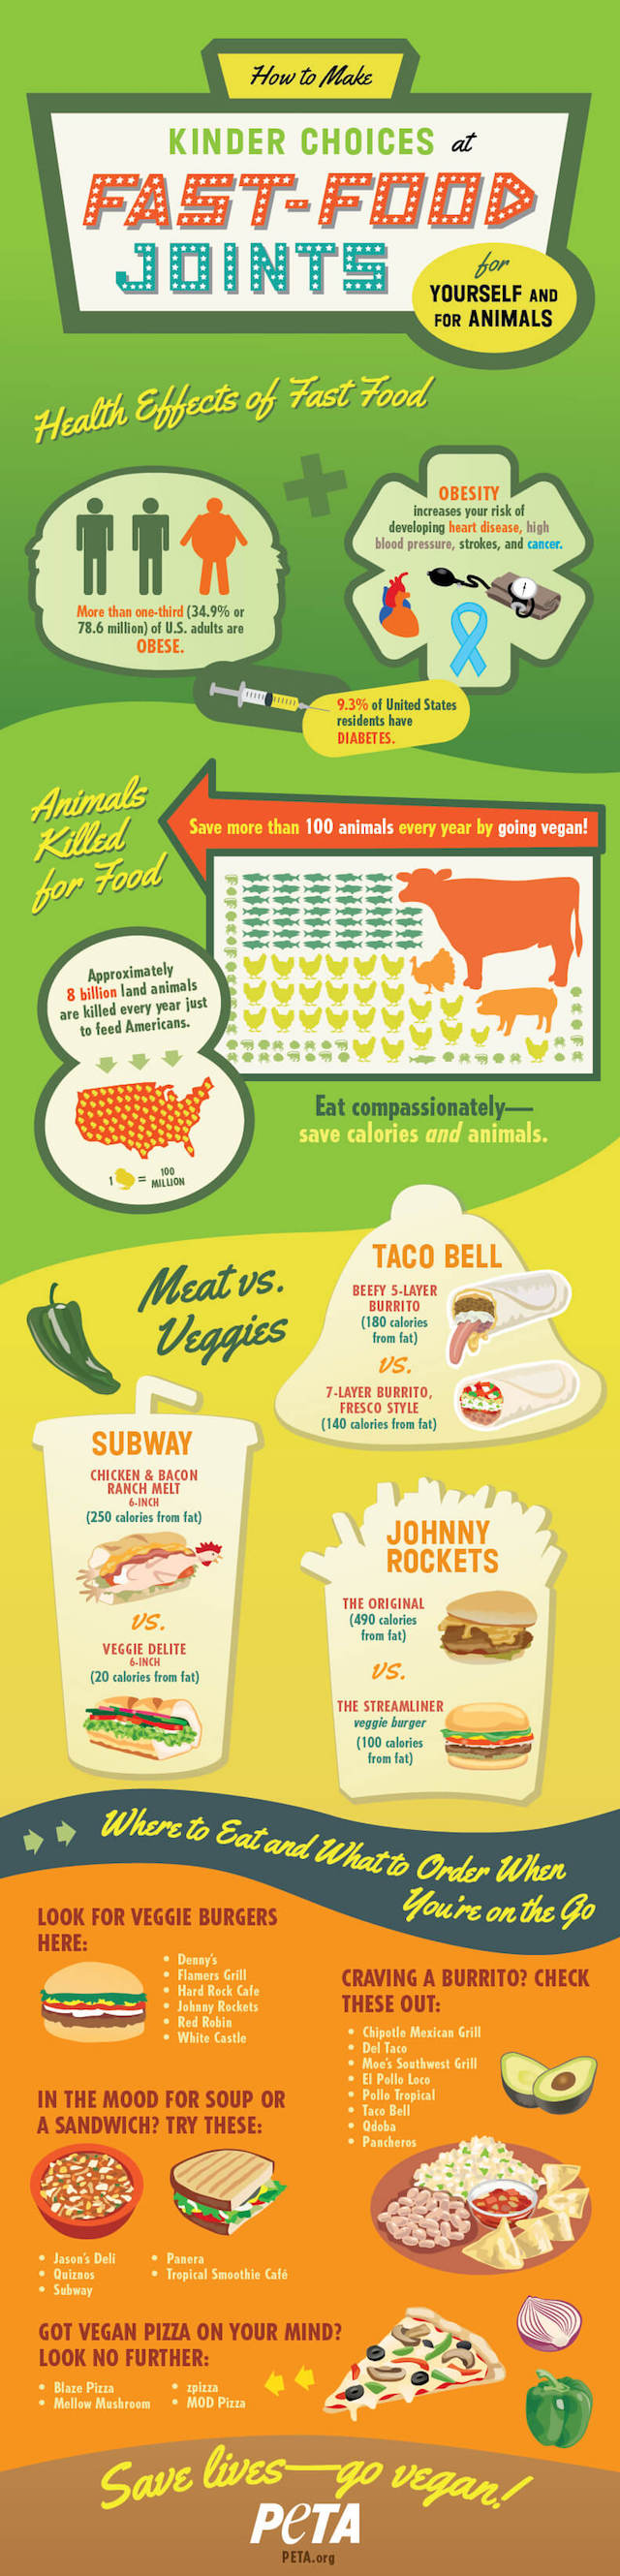 infographic-fastfood-kinderchoices-peta.jpg